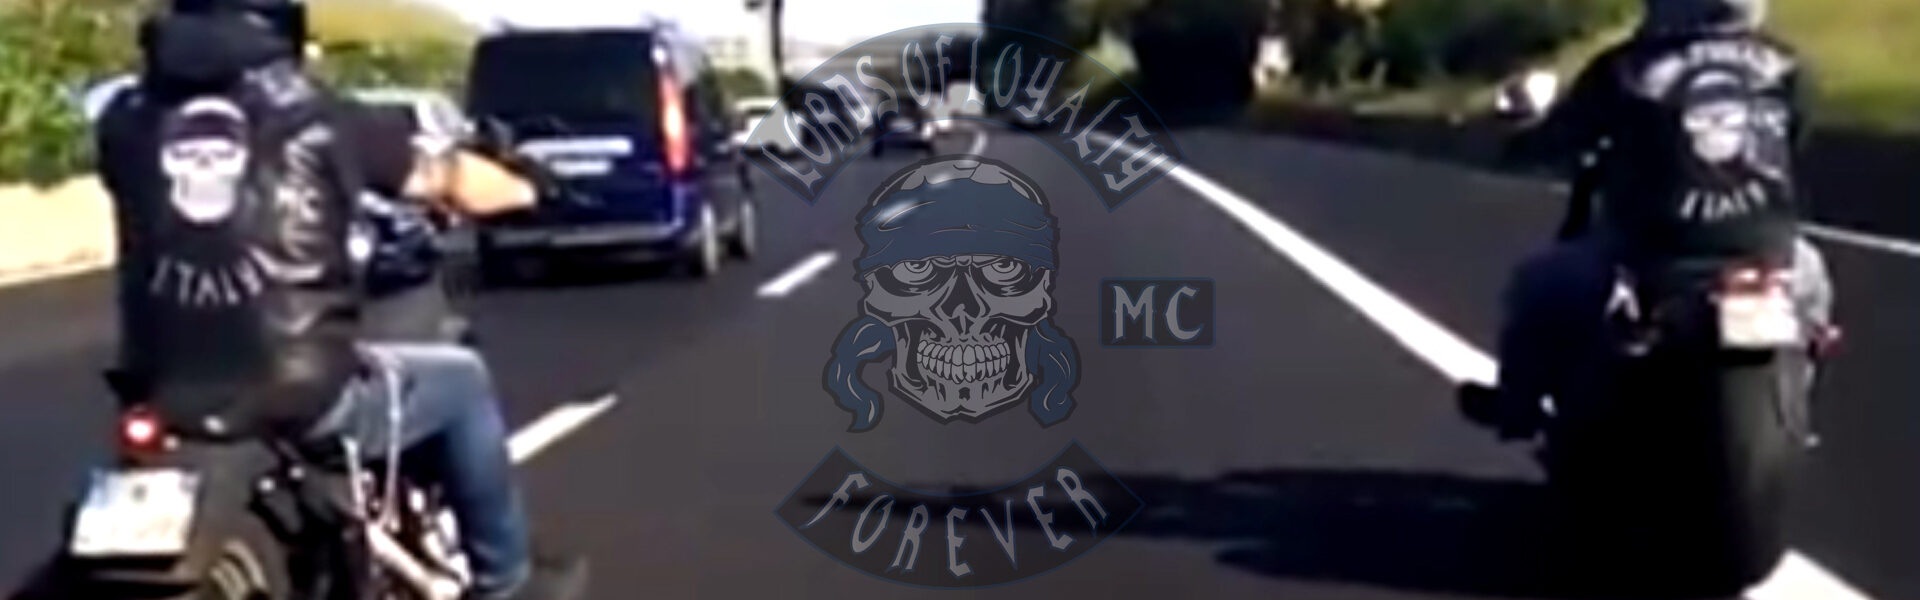 Lords of Loyalty MC